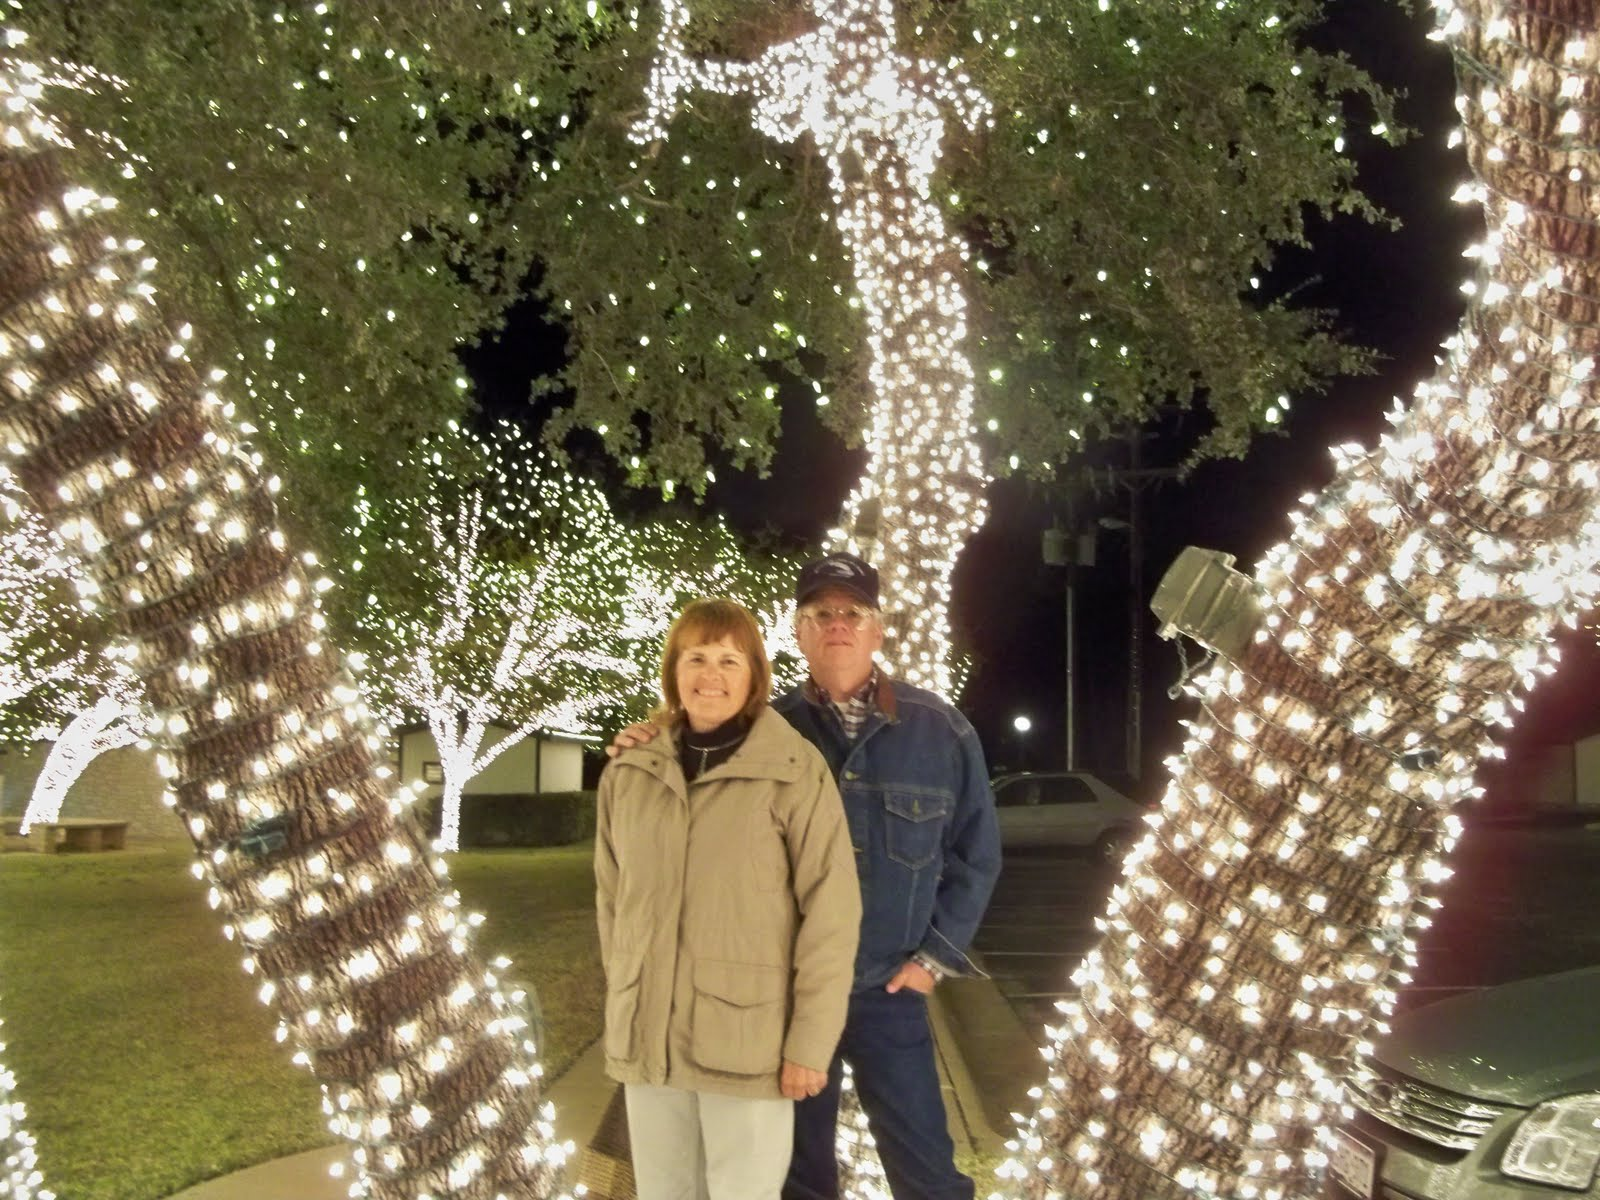 Backroads with Barb and Bill: 1 Million Lights in Johnson City, TX ...